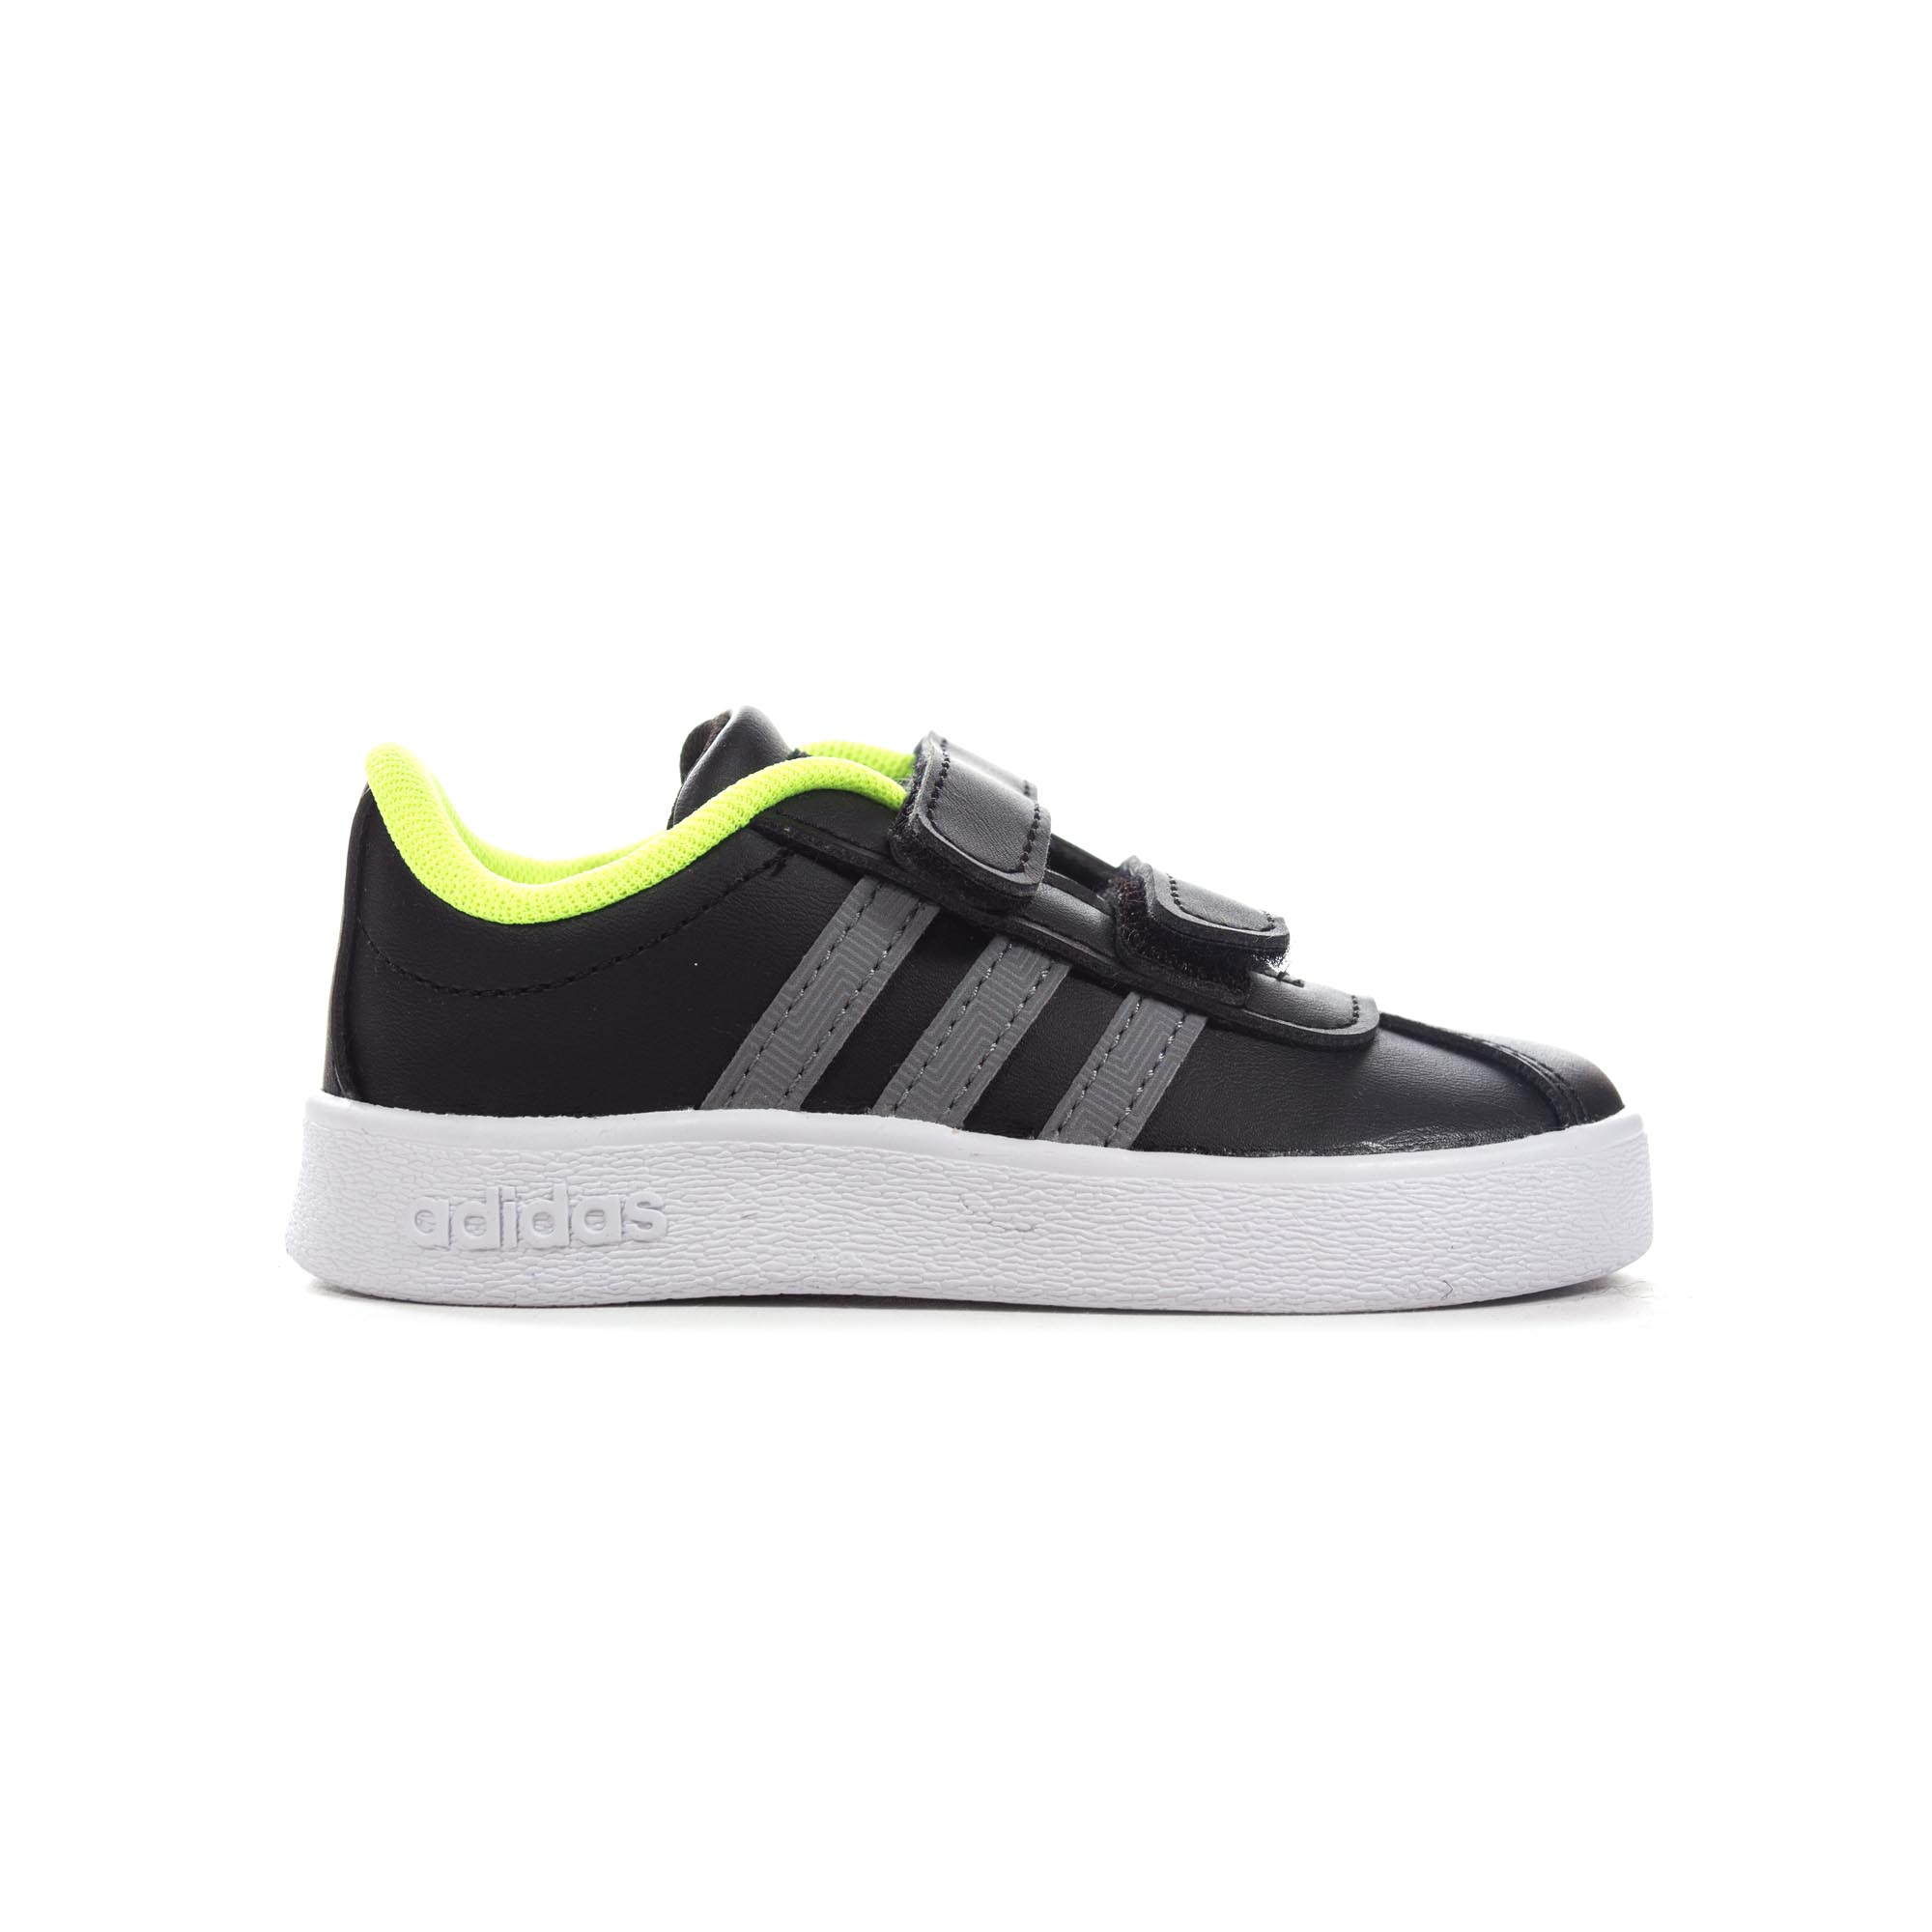 aa8f5feaa192 Details about adidas VL Court 2.0 Infant Kids Boys Sports Trainer Shoe Black  White